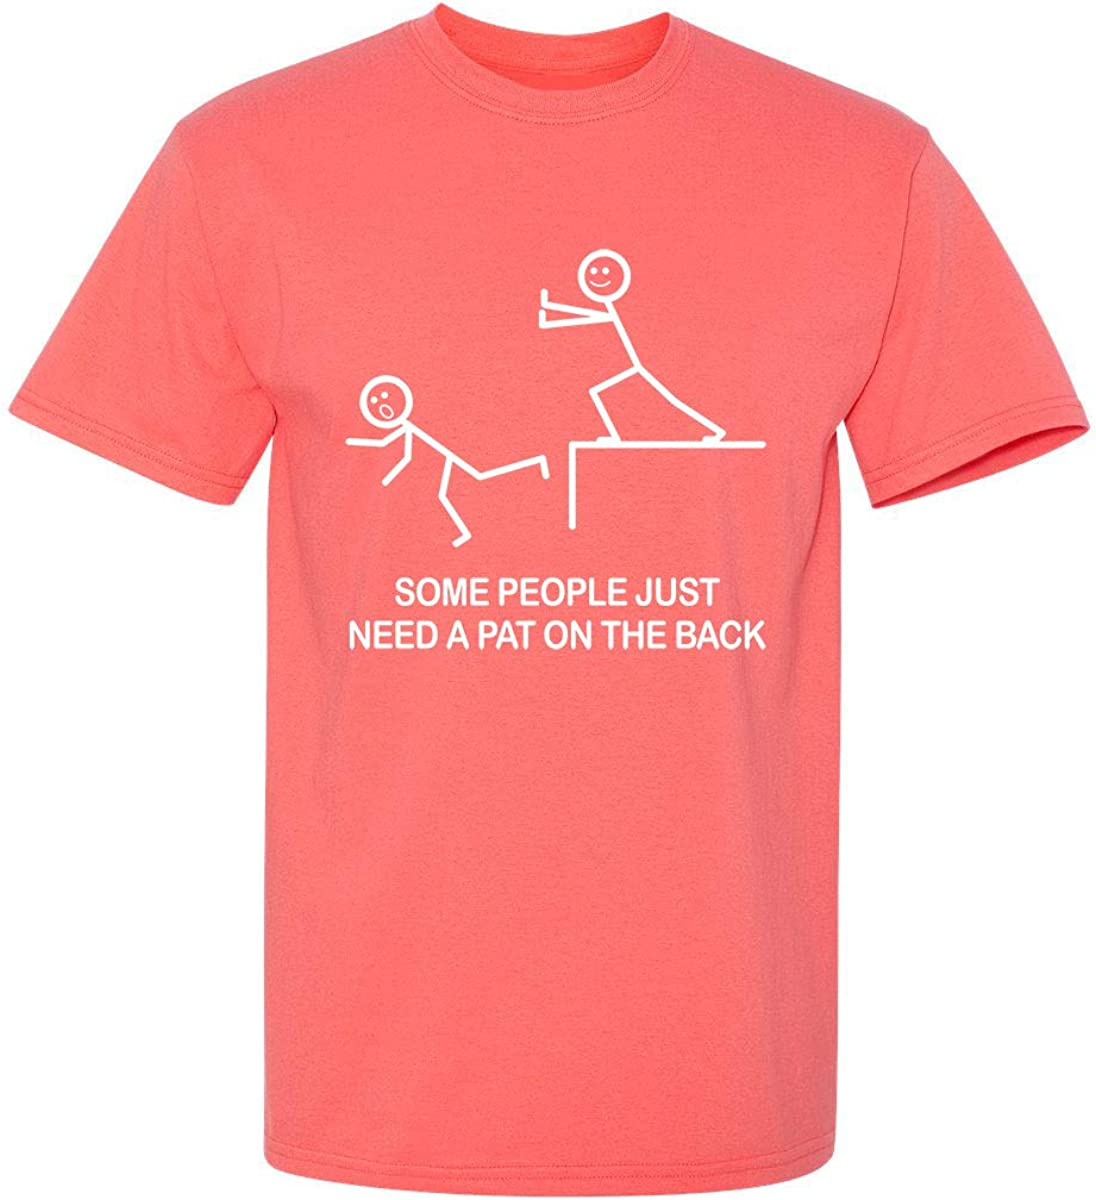 Some People Just Need A Pat On The Back Adult Humor Sarcasm Mens Funny T Shirt